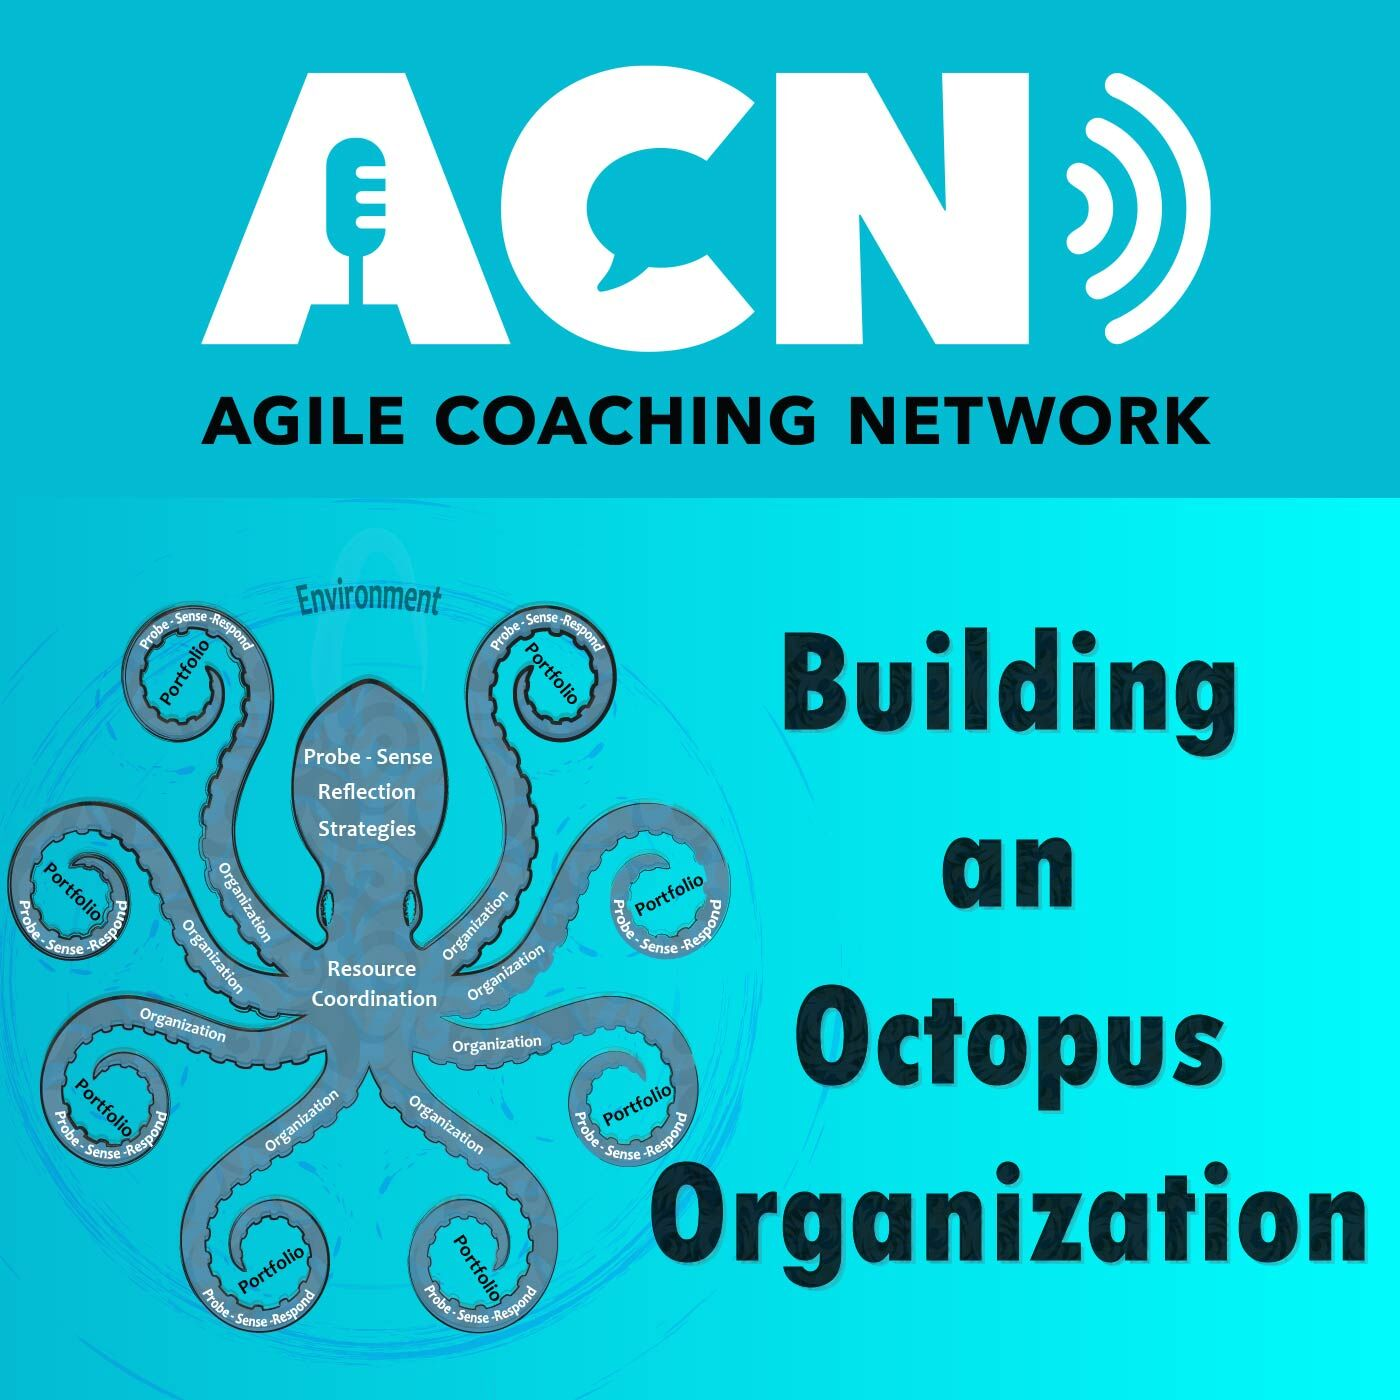 Building an octopus organization and supporting sustainability